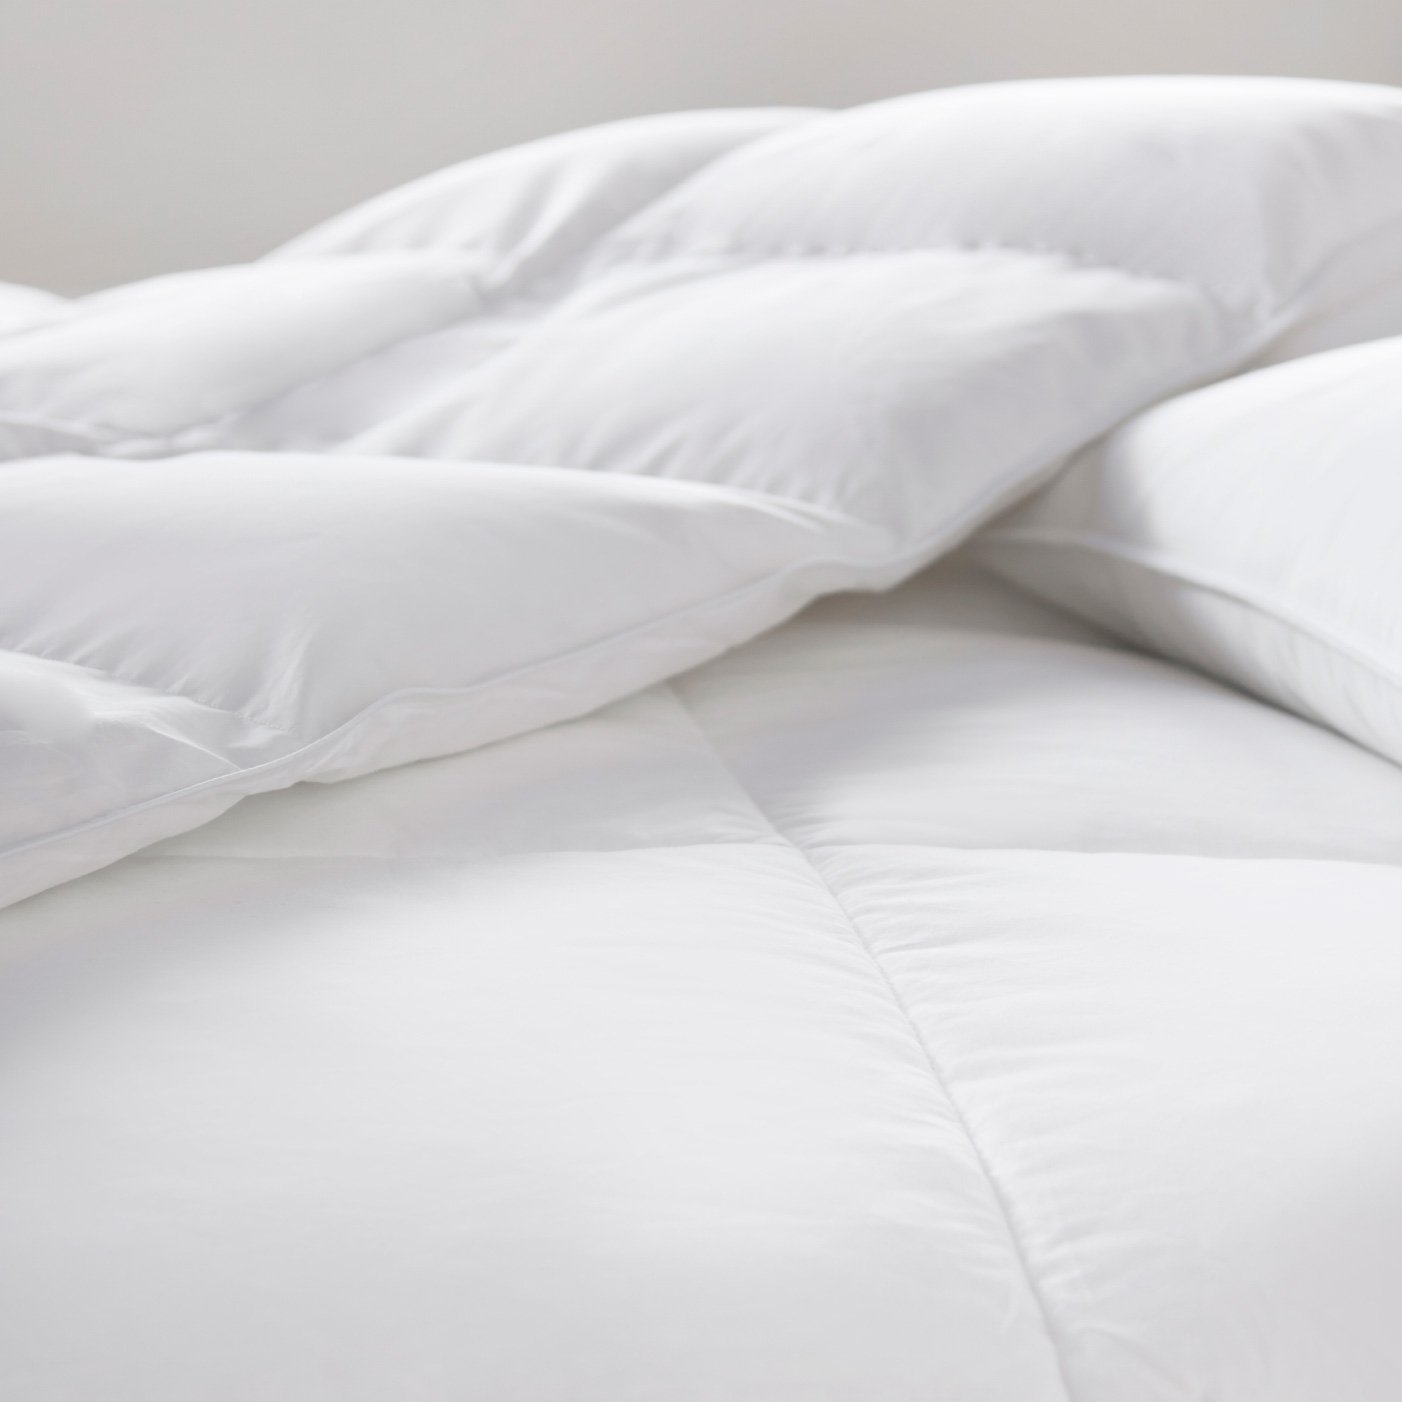 Duvet Vs Comforter What Is A Duvet And Is It Right For You Peacock Alley